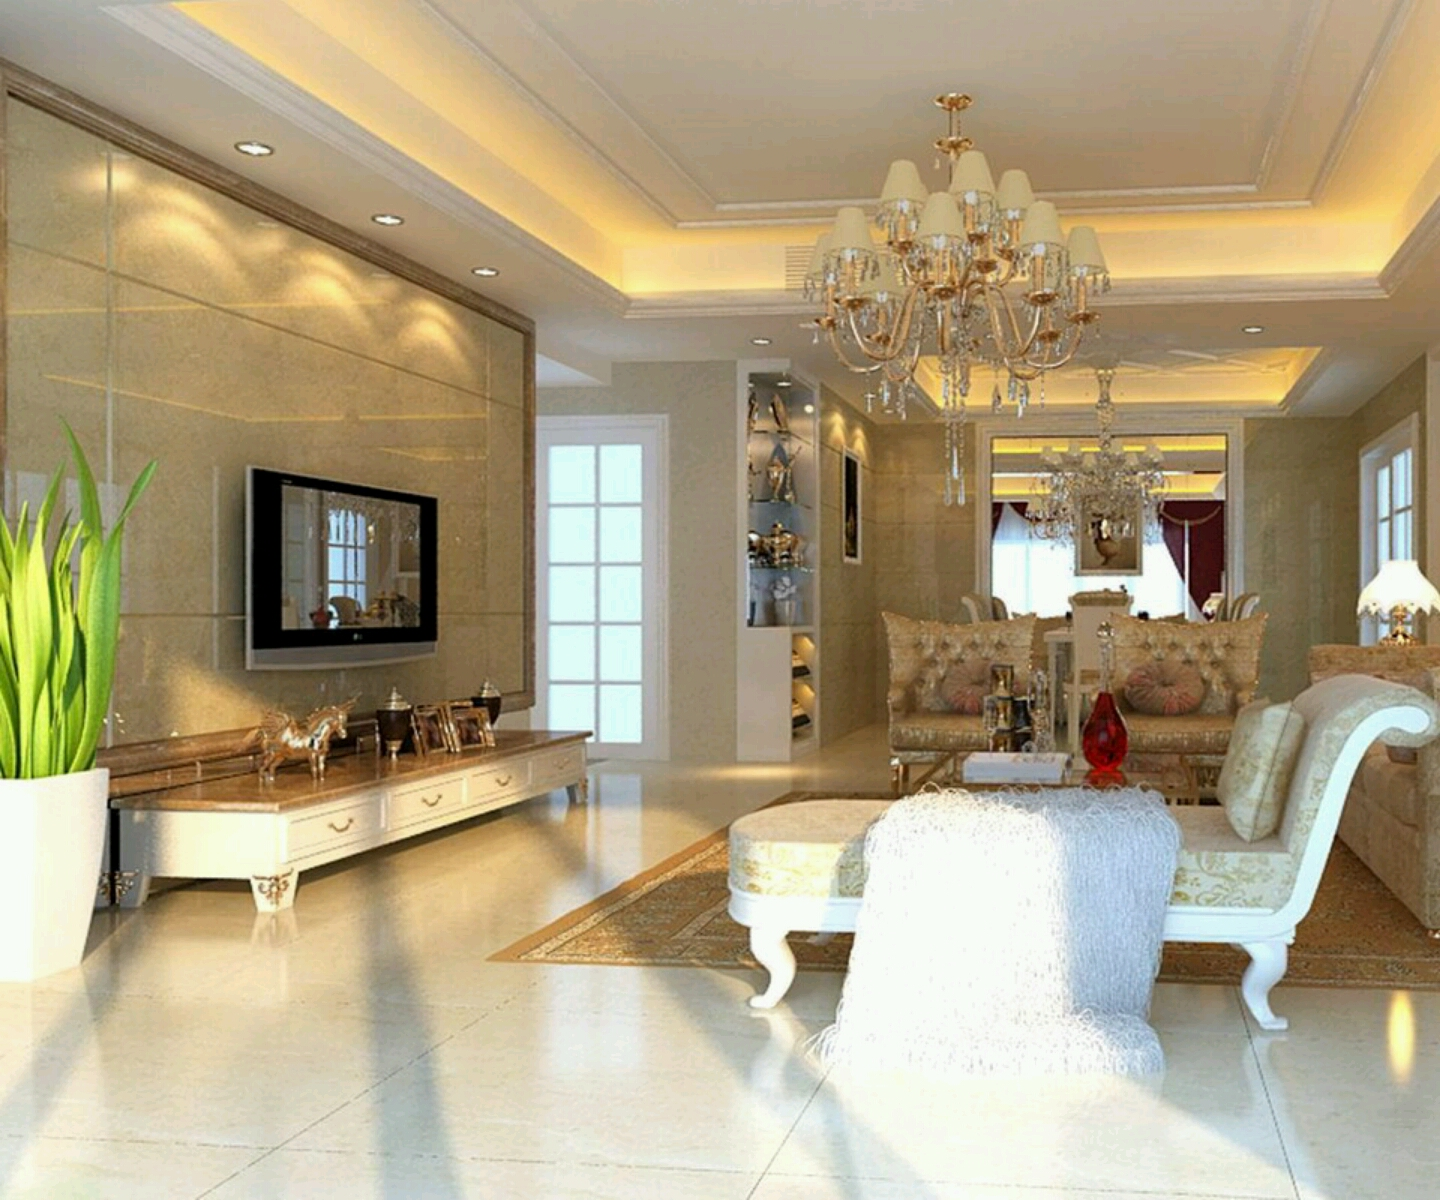 New home designs latest luxury homes interior decoration for Luxury homes designs interior